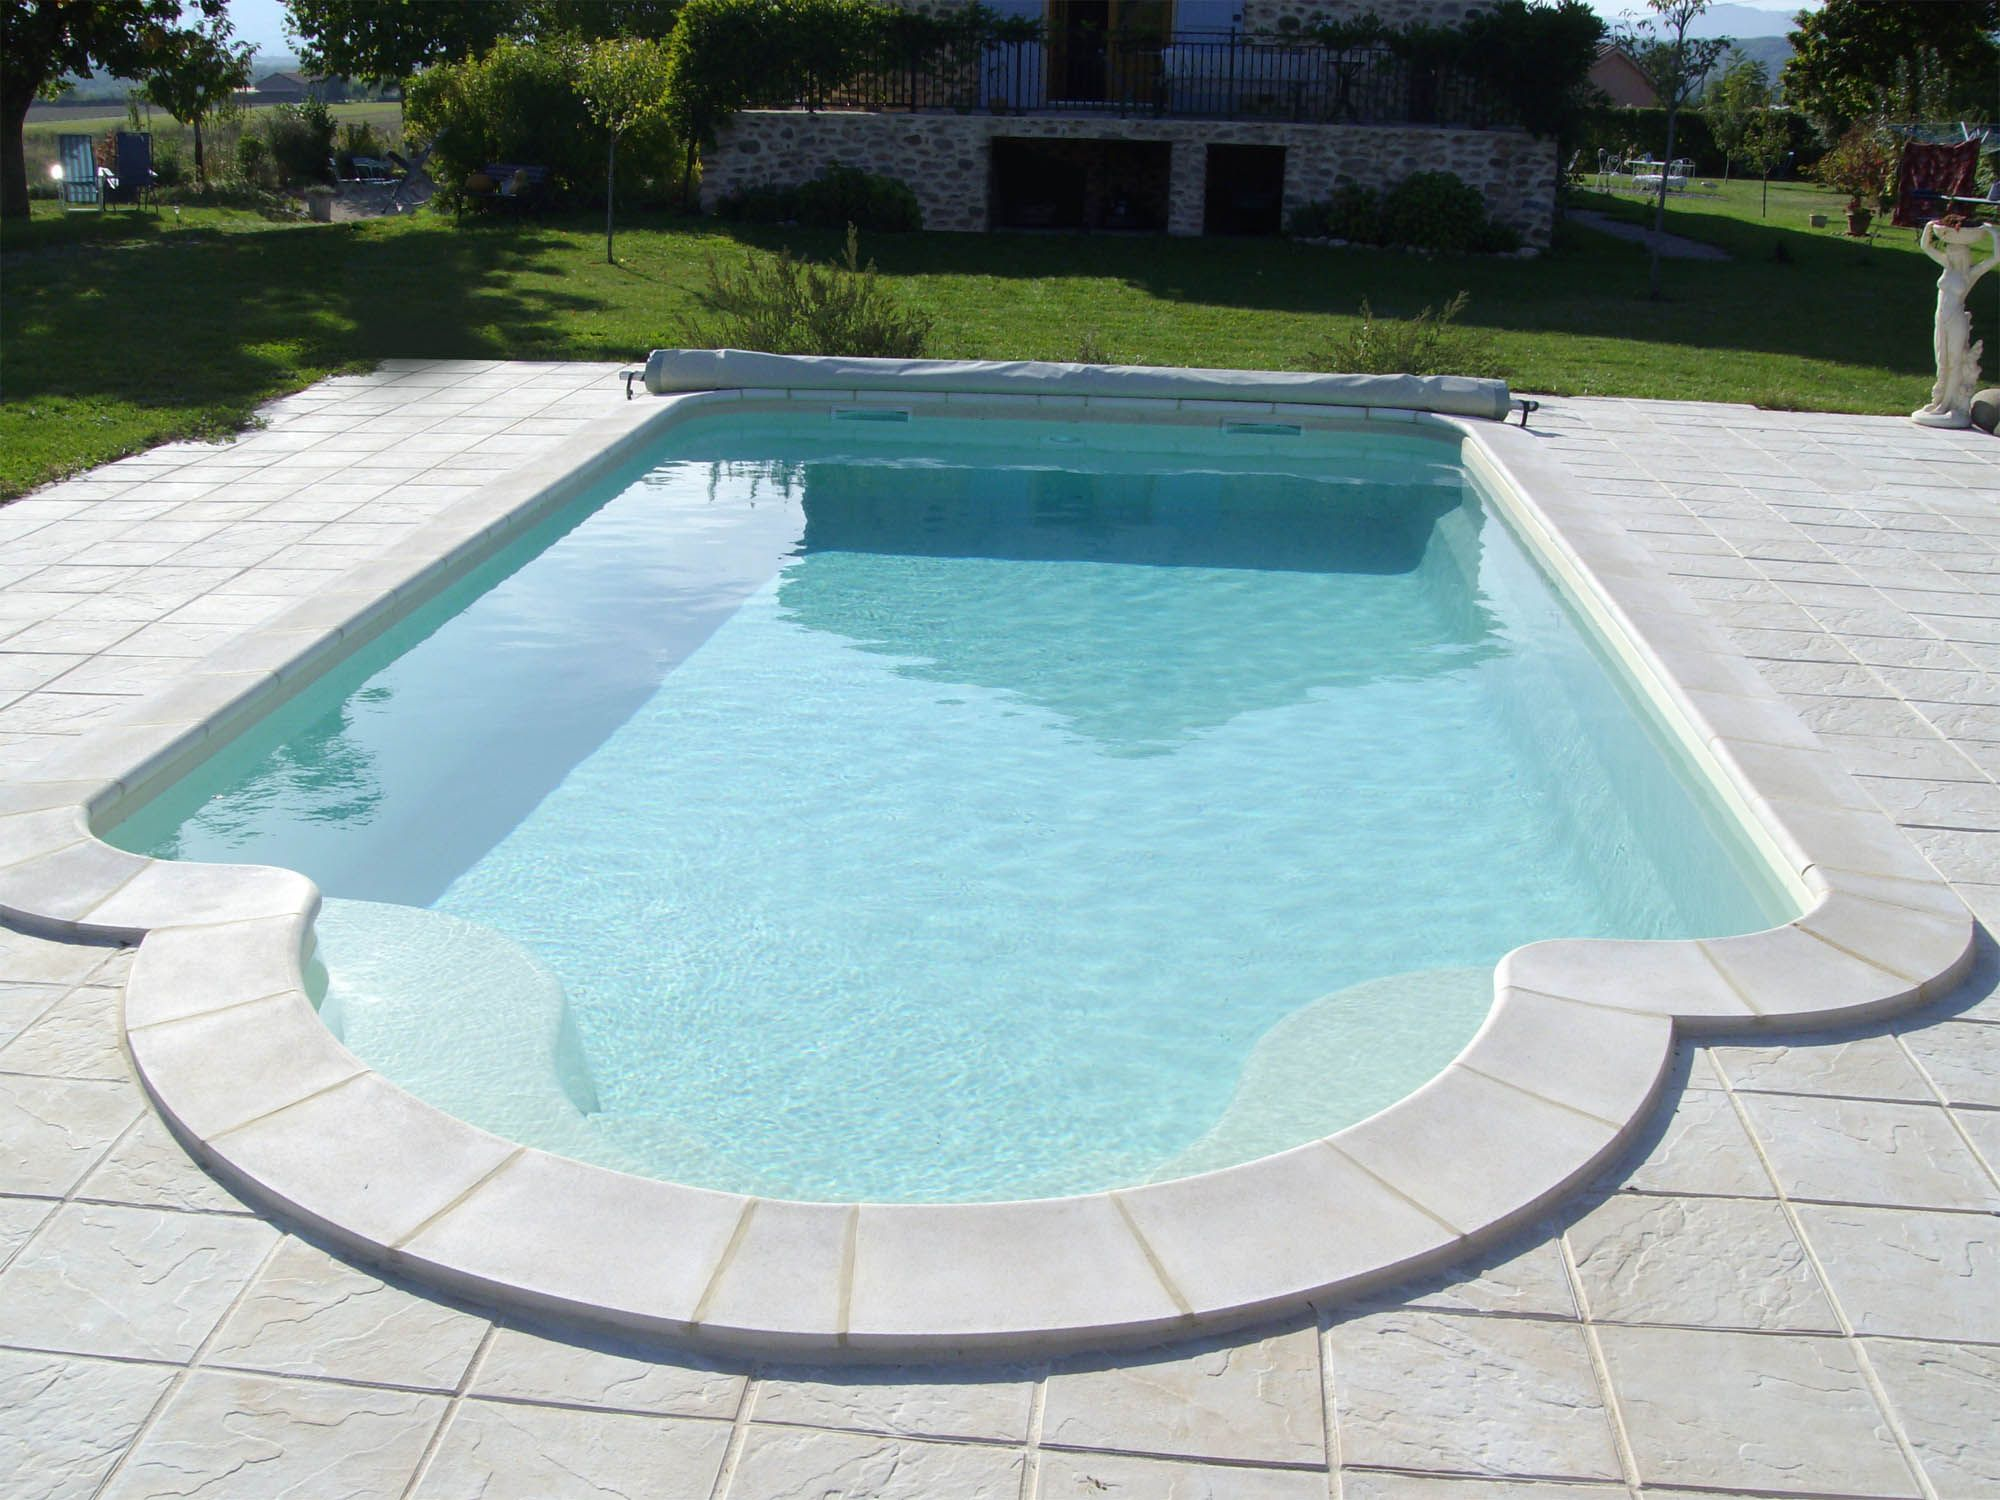 Piscine coque polyester variation fabrication fran aise for Piscine coque polyester